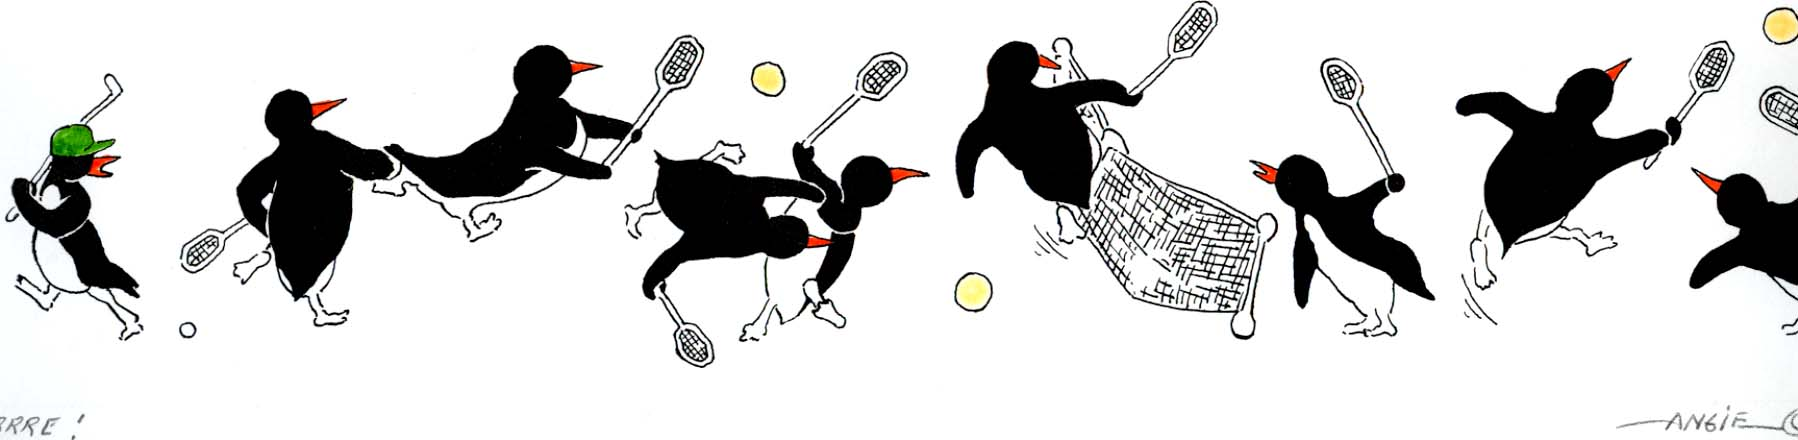 1517 Tennis (forrre)